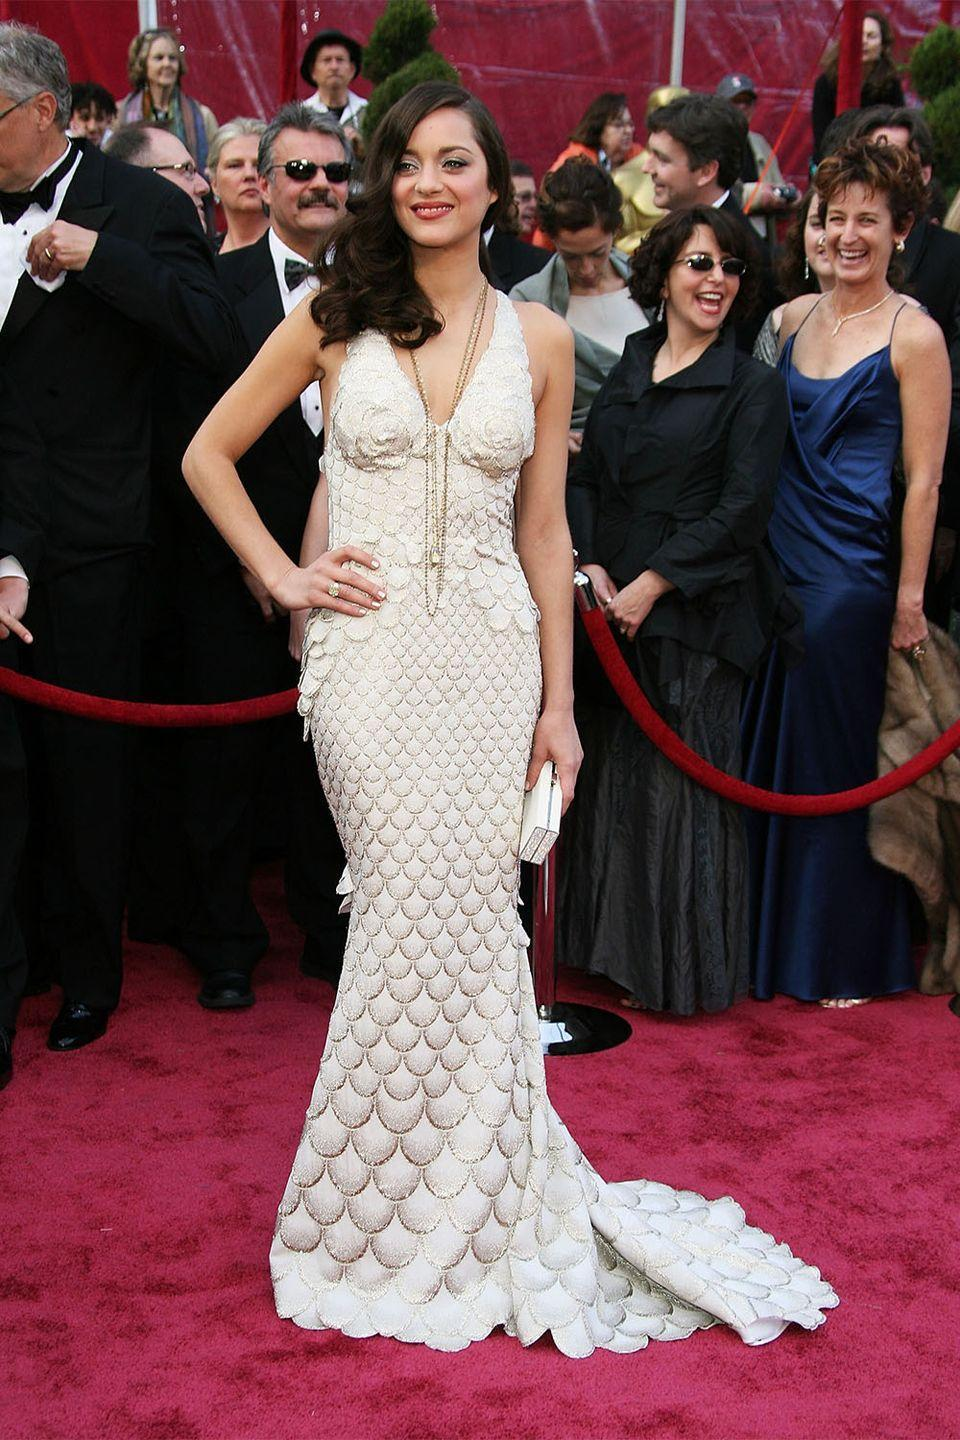 <p>In a sea of tulle and crystal embellished gowns, Marion Cotillard stood out on the red carpet in a Jean Paul Gaultier dress that looked as though it was literally made of fish scales. </p>